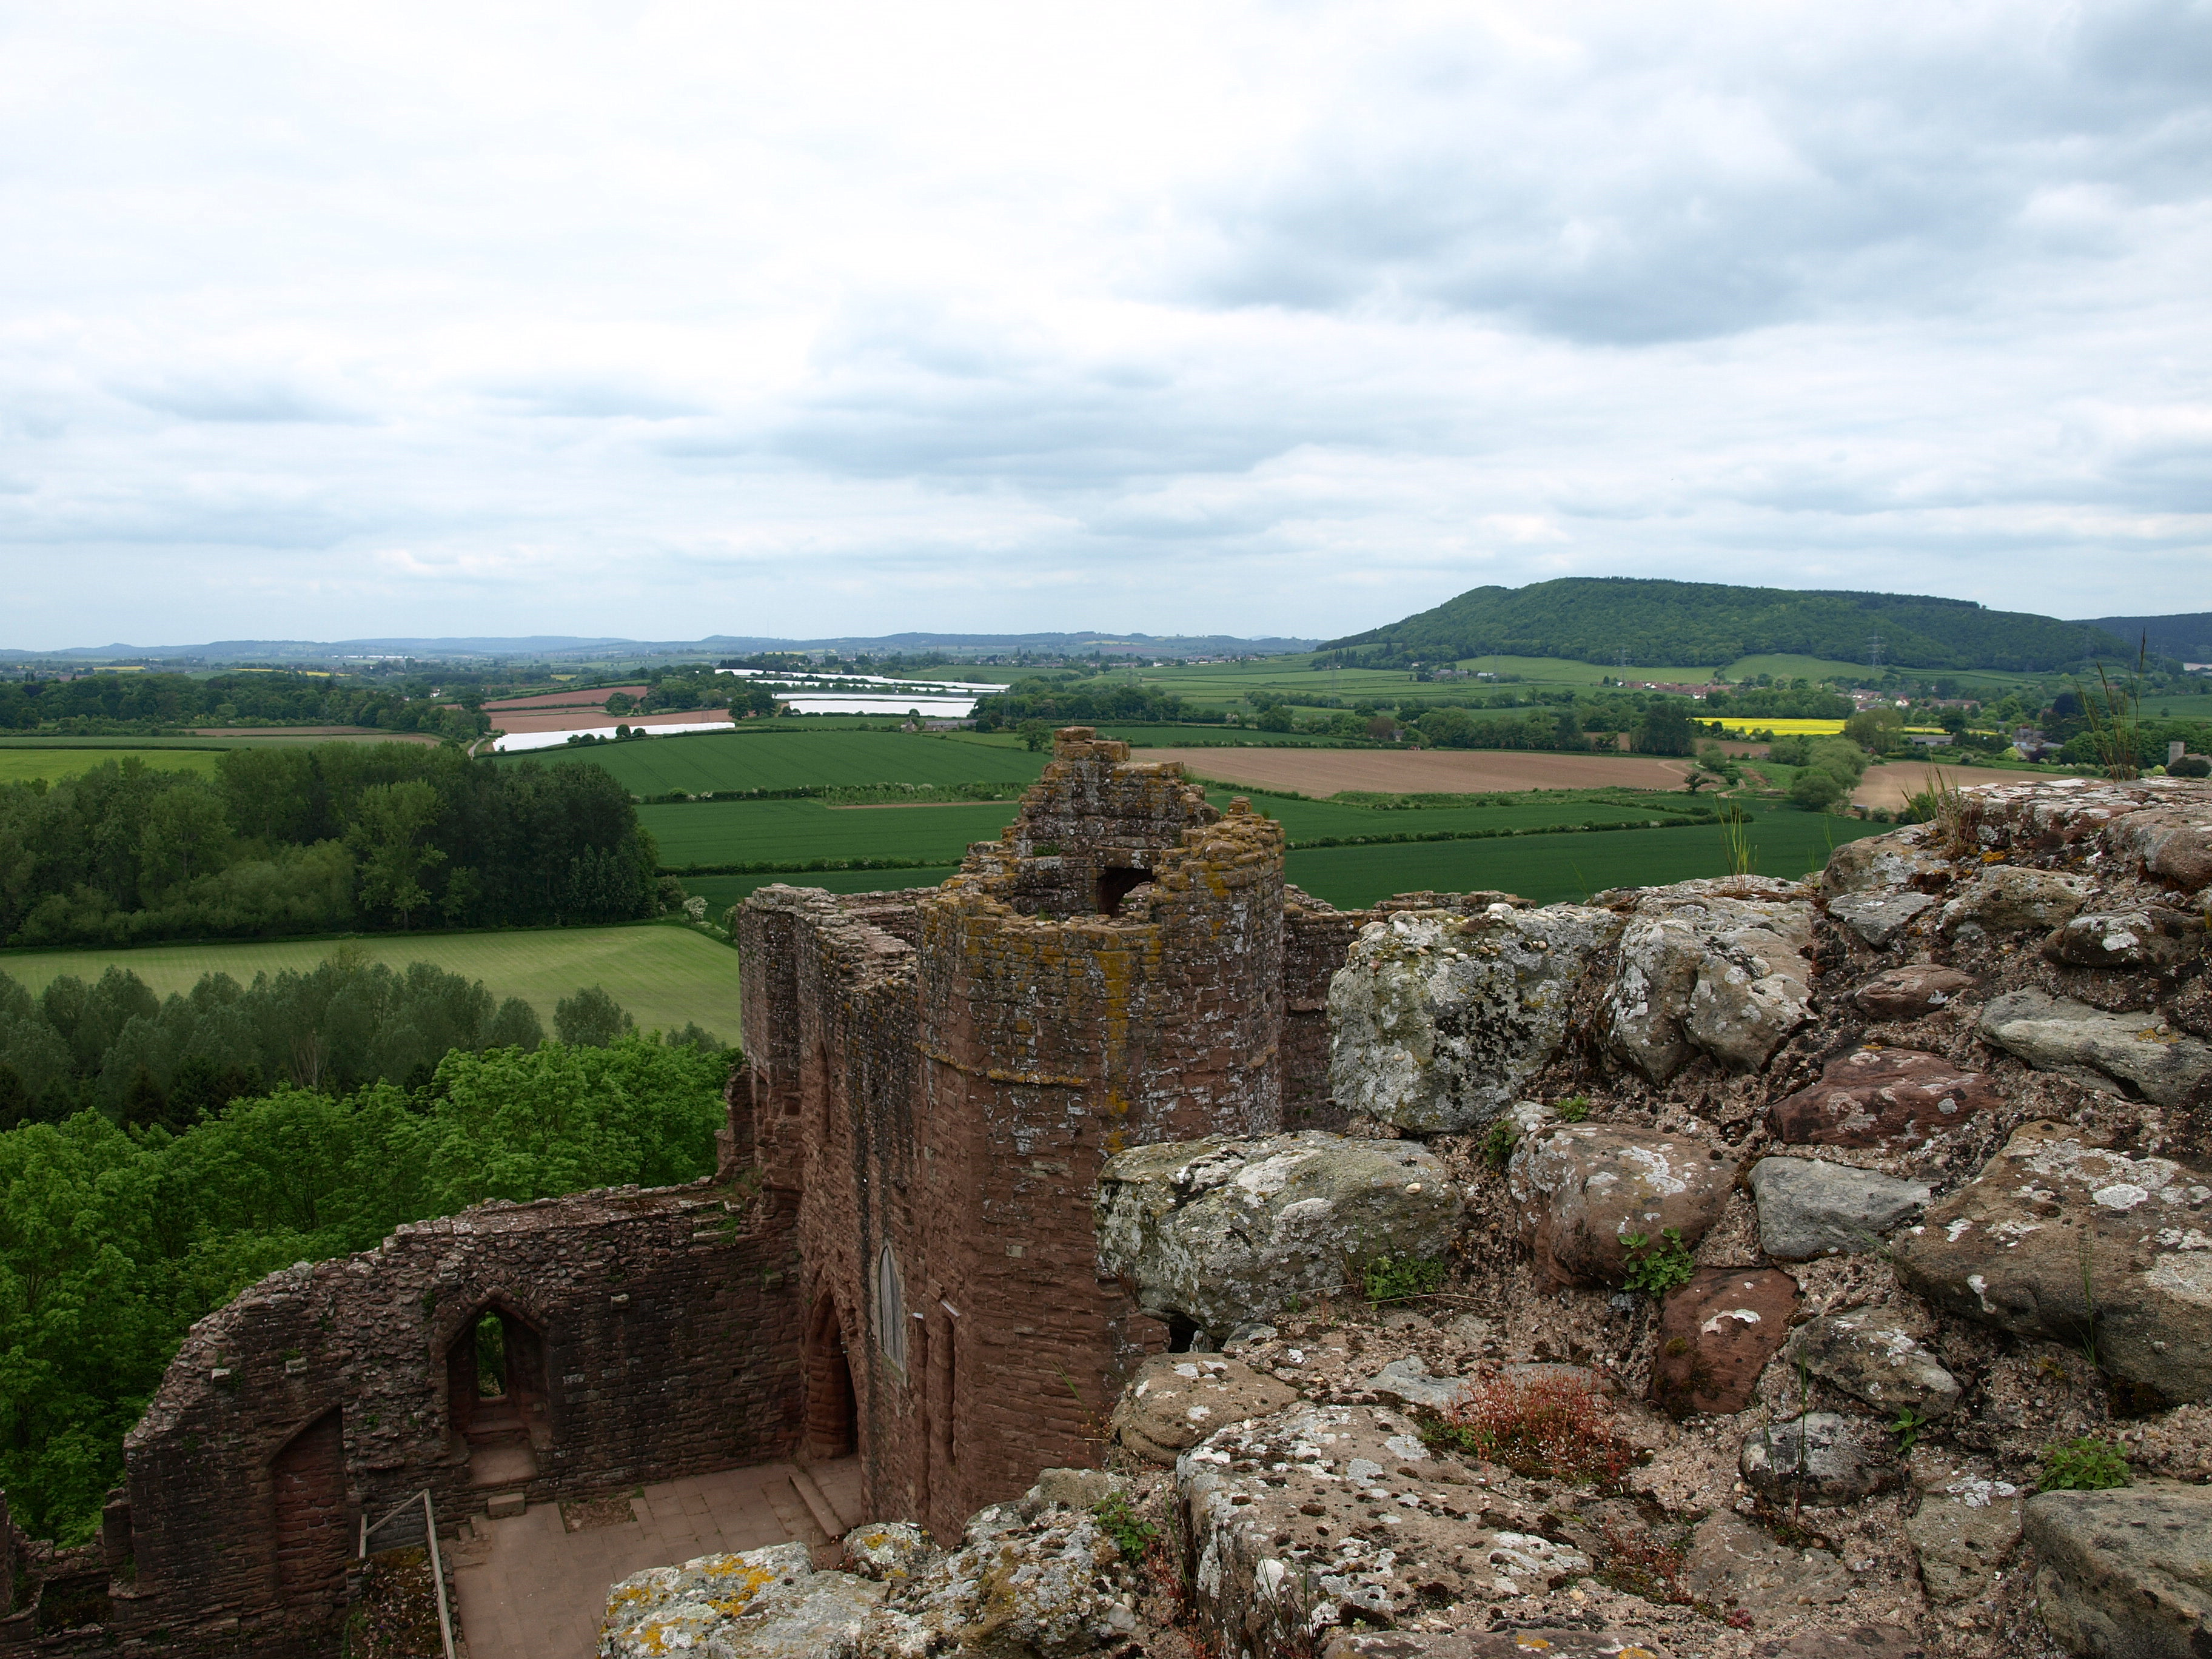 View of the Countryside and Chapel From Atop the Norman Keep